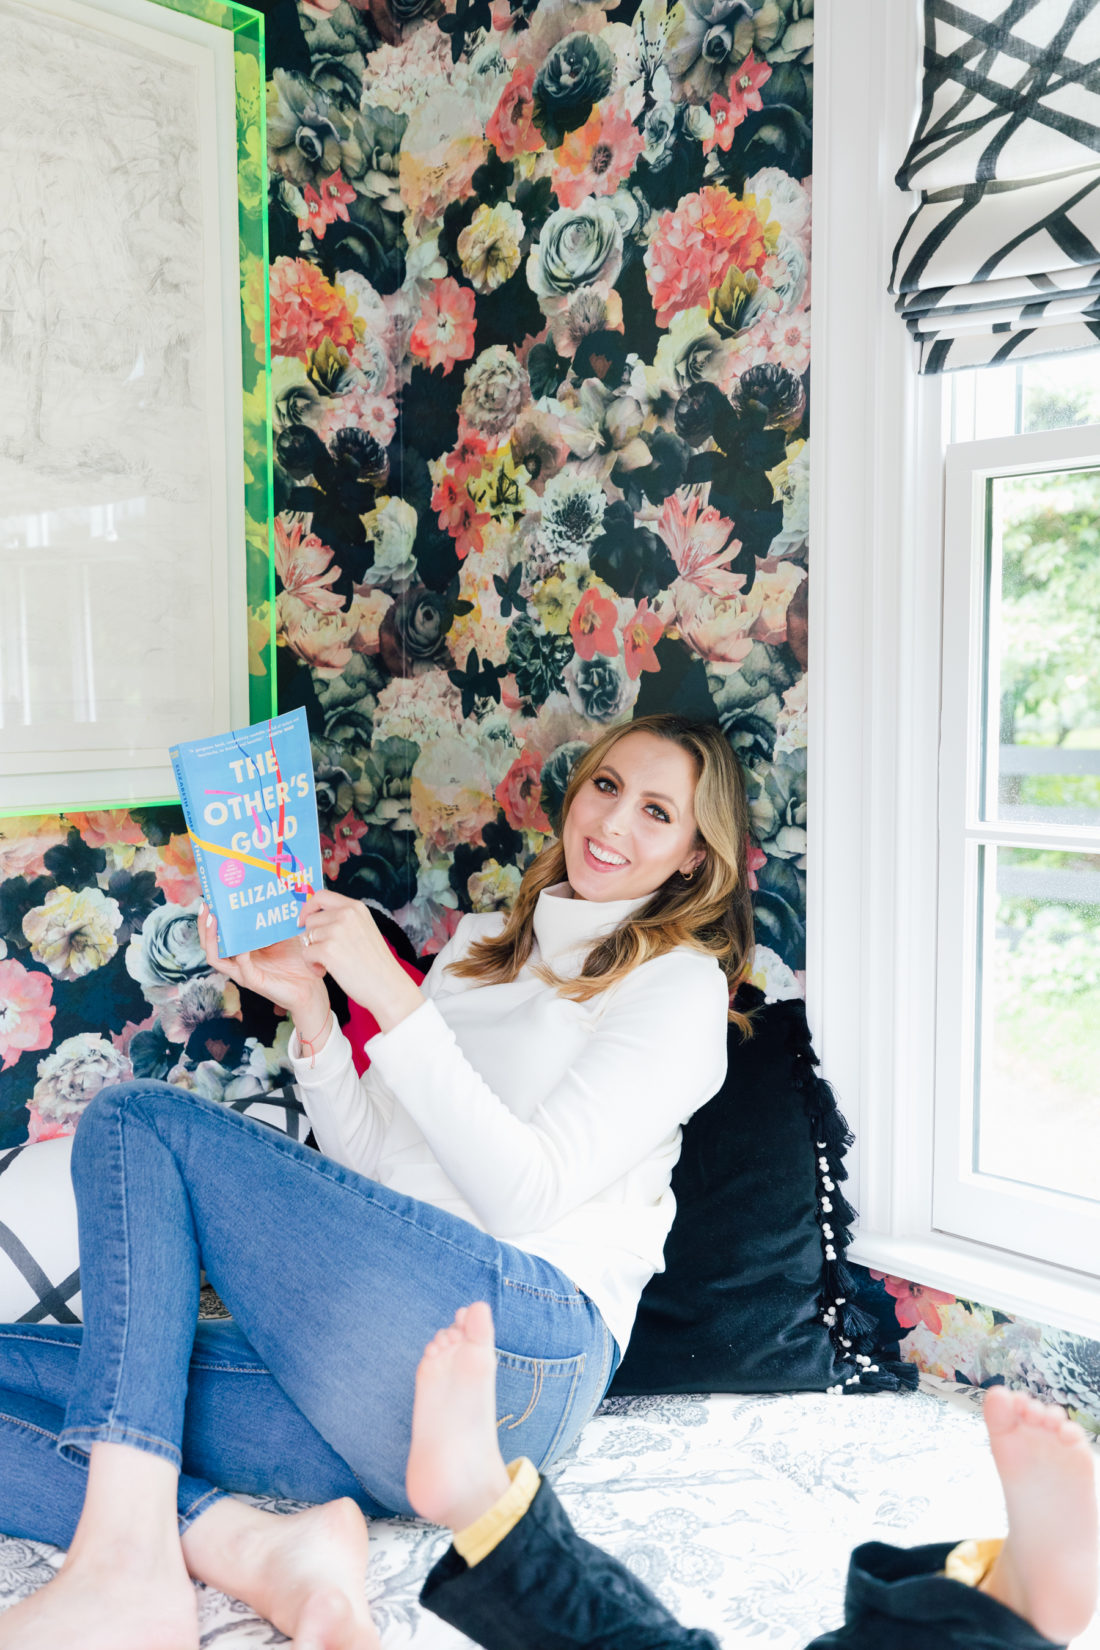 Eva Amurri Martino lies in her snuggle nook reading the 4th HEA Book Club Pick: The Other's Gold by Elizabeth Ames